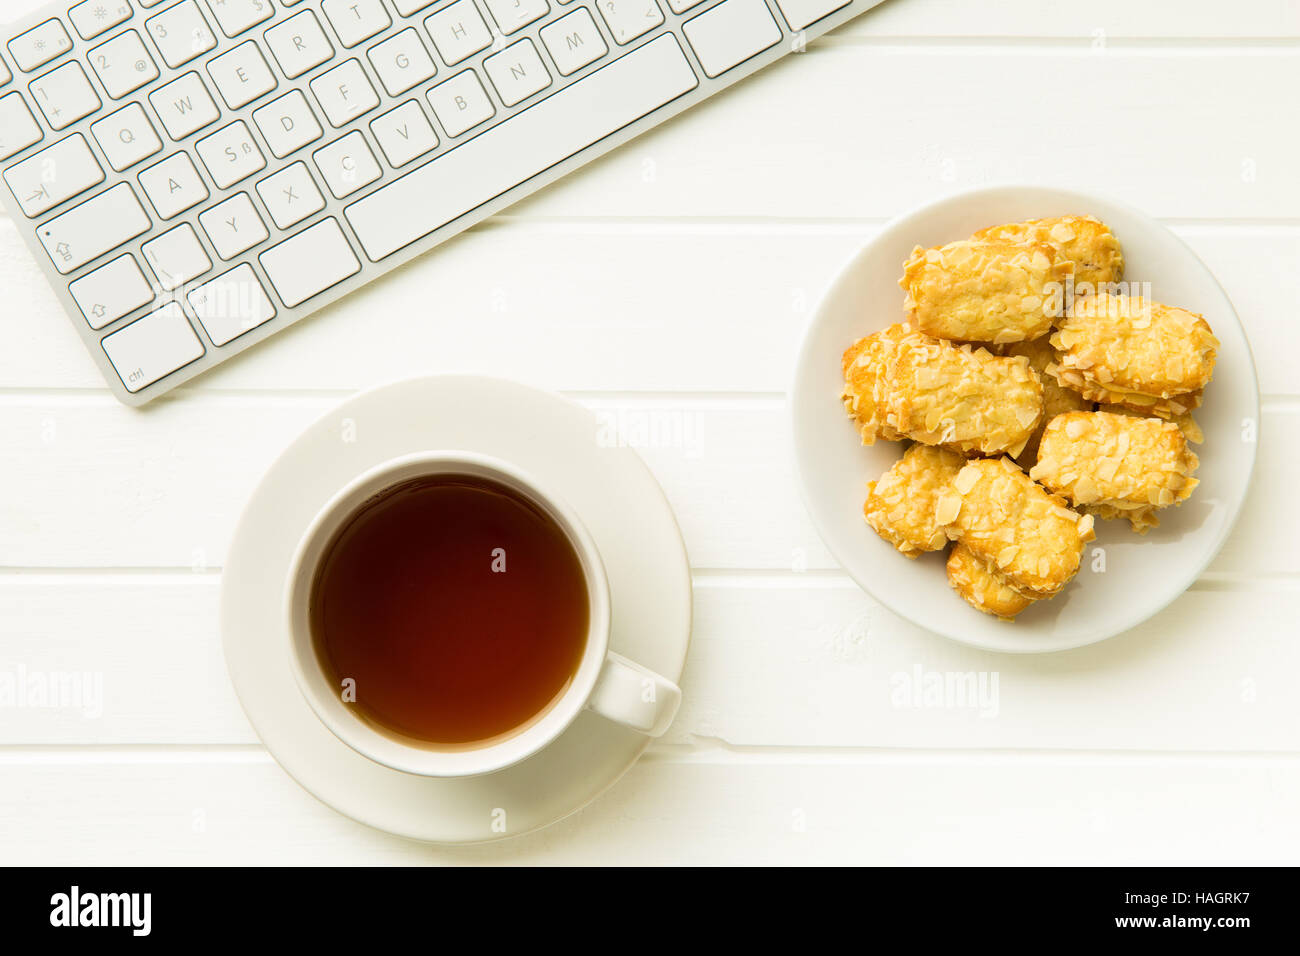 Break for tea and almond biscuits at the office. Concept with tea,cookies and computer keyboard. - Stock Image